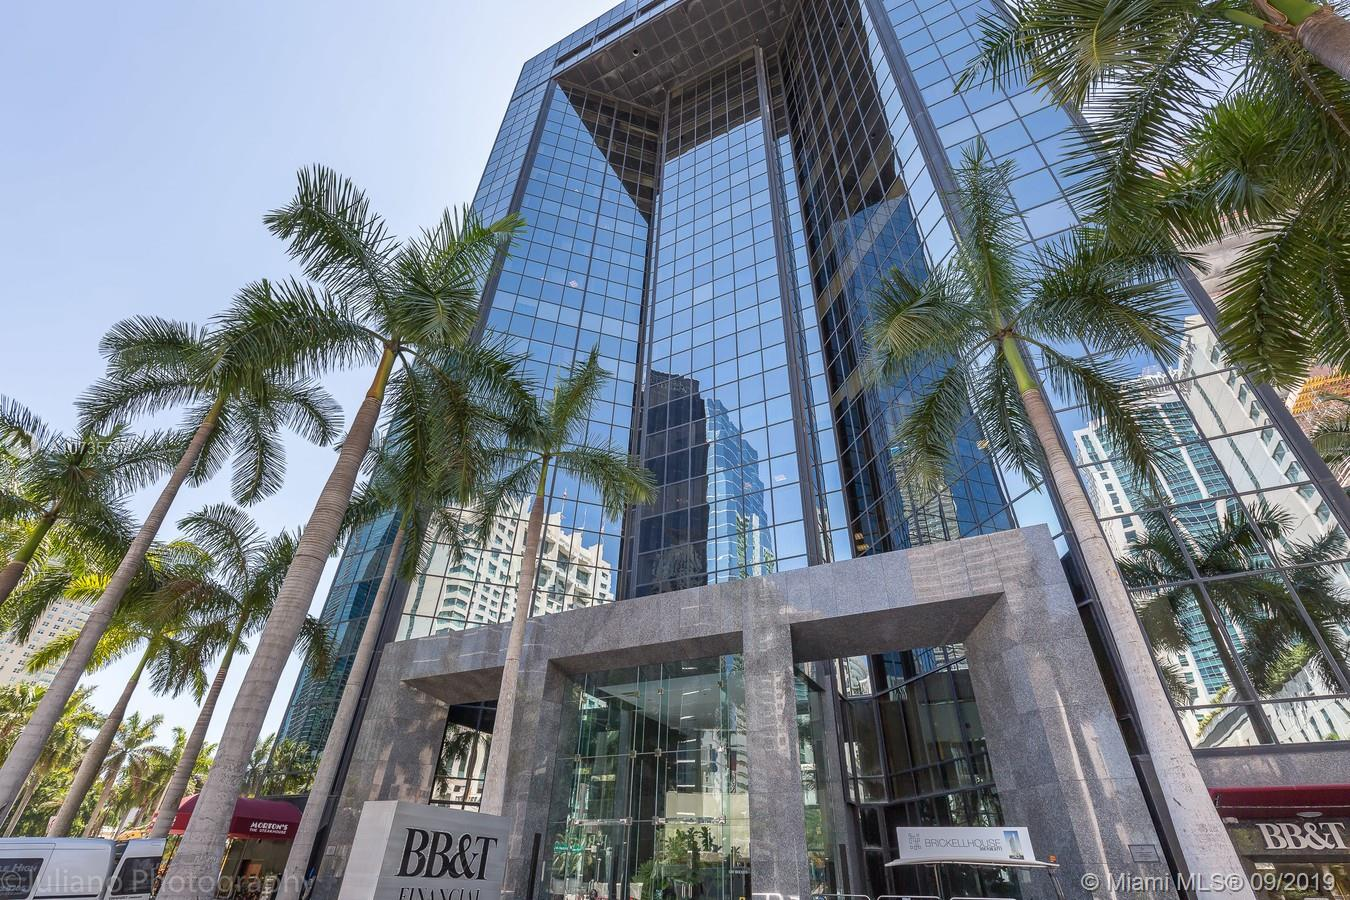 """GREAT OPORTUNITY"" OWNED THIS LUXURY OFFICE ON THE HEARD OF BRICKELL 1683 SF OF REALLY NICE PROFESSIONAL LOOKING PLACE ON THIS MODERN BUILDING IN ONE OF THE MOST DESIRED AREAS ON BRICKELL TENANT OCCUPIED PLEASE CALL LISTING AGENT"